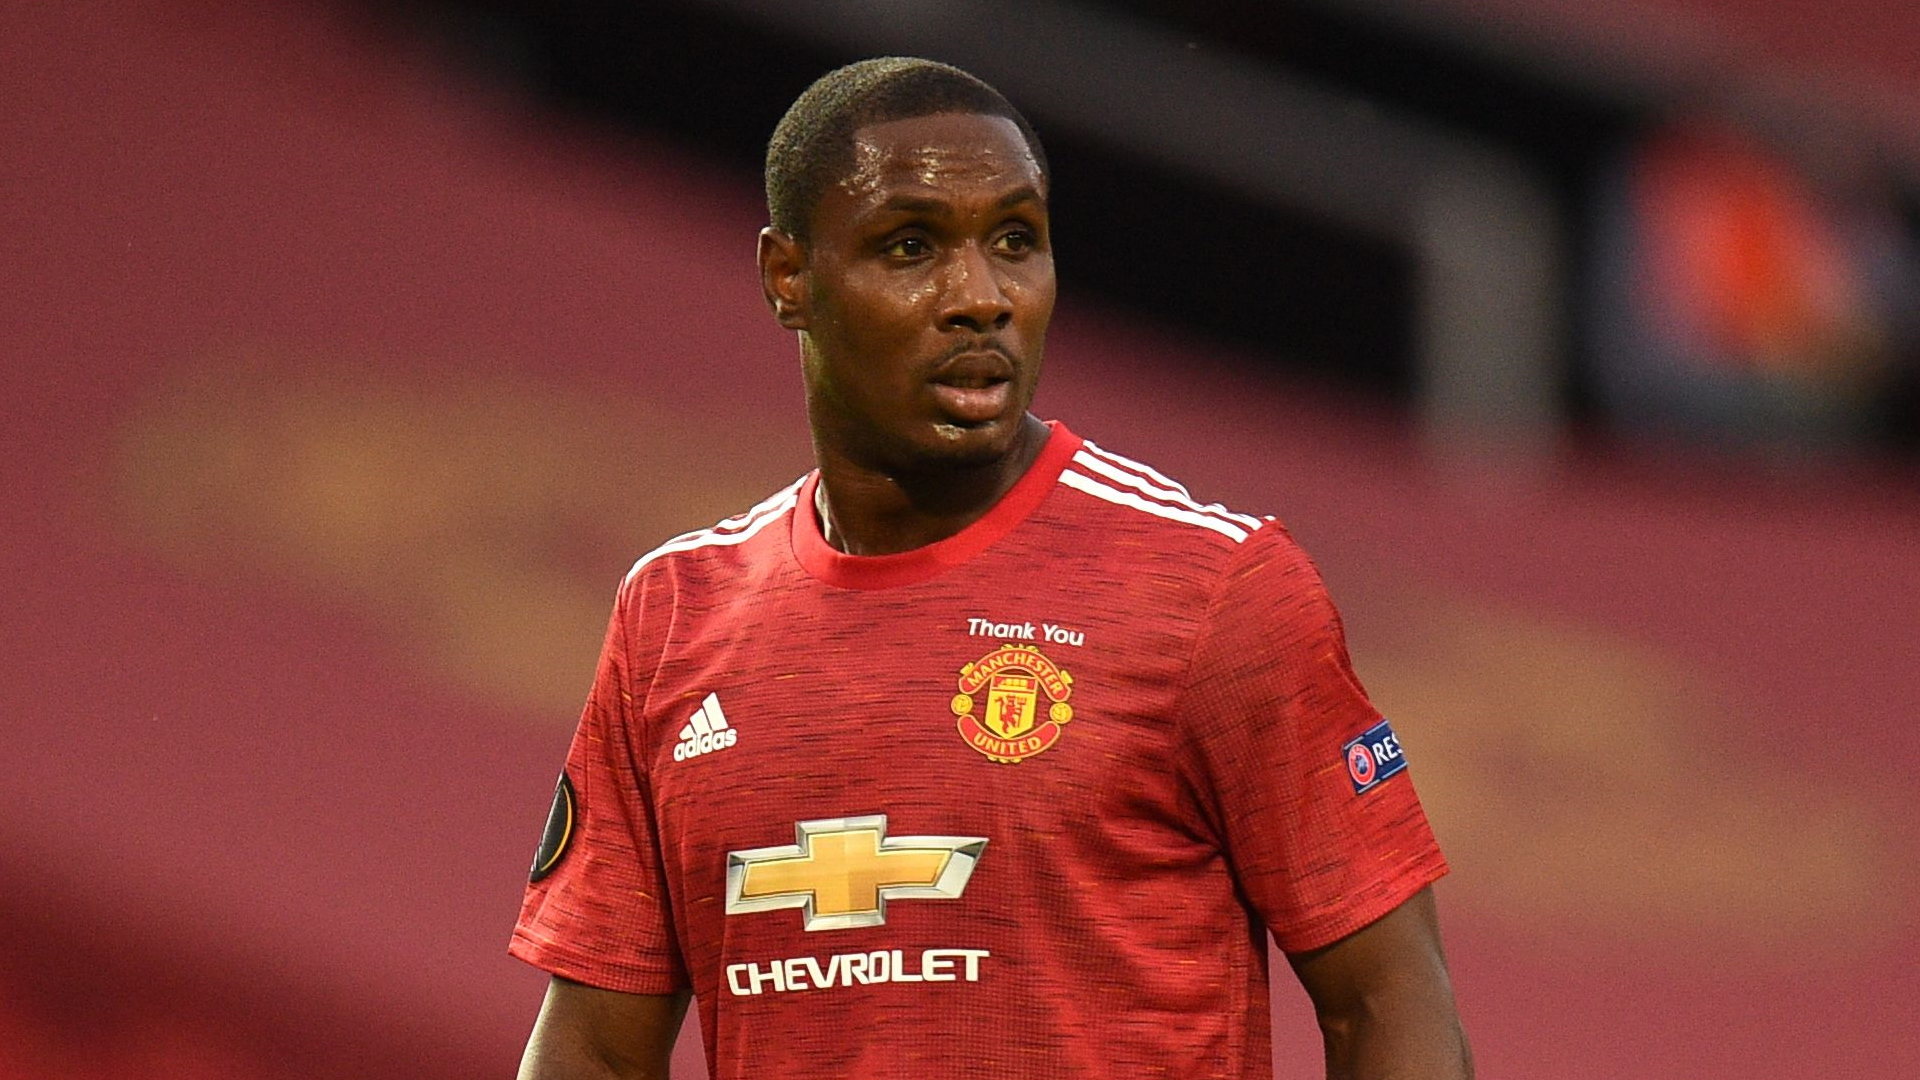 Ighalo out, Bailly on bench as Manchester United clash against Brighton and Hove Albion